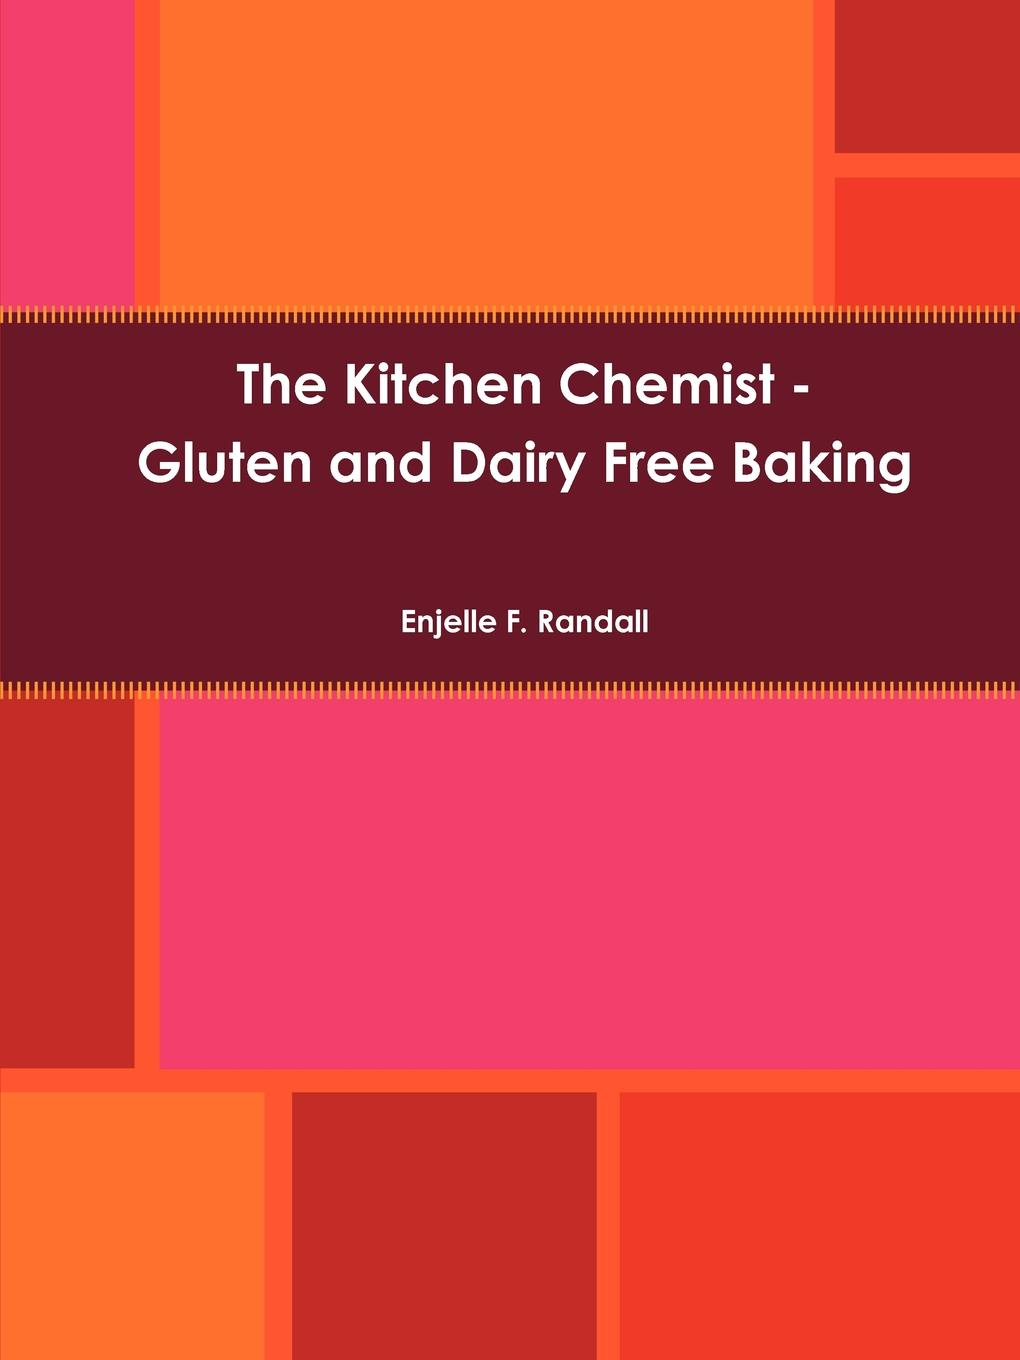 Enjelle F. Randall The Kitchen Chemist - Gluten and Dairy Free Baking